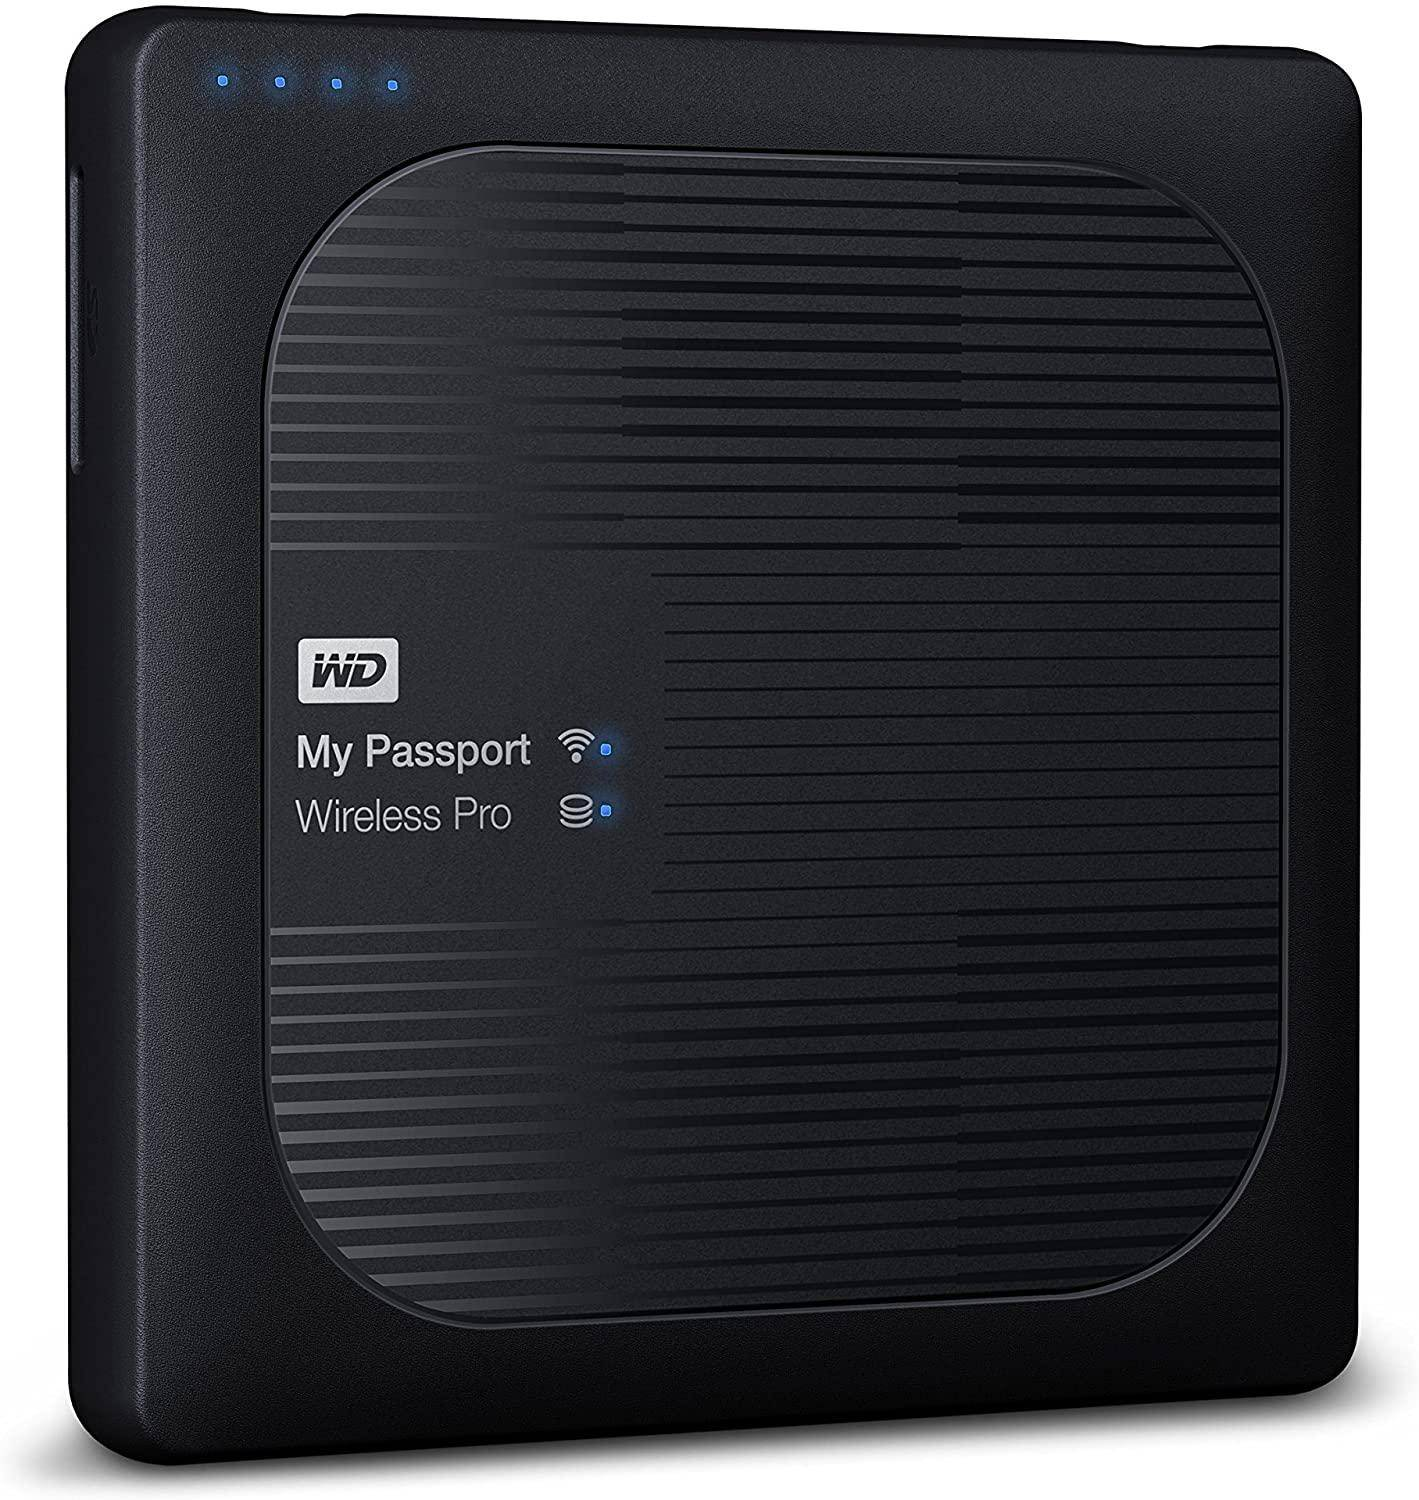 WD My Passport Wireless Pro 2TB WiFi Portable External Hard Drive zoom image